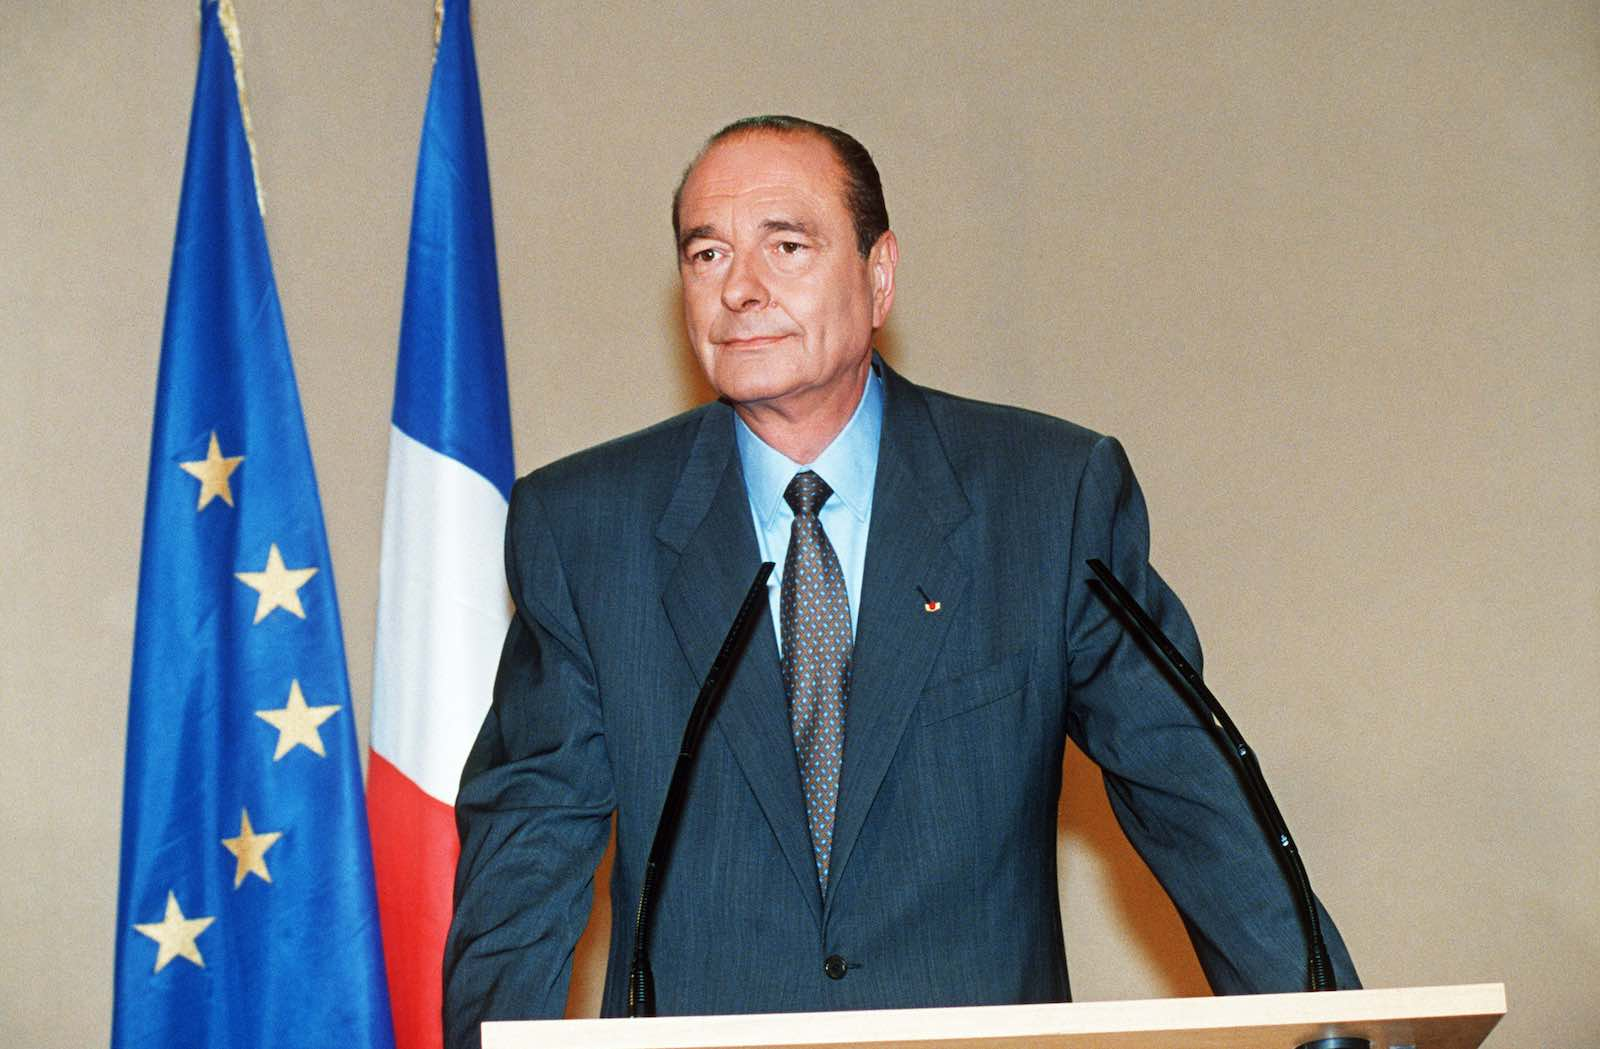 French President Jacques Chirac in June 1995 (Photo: AFP/Getty Images)